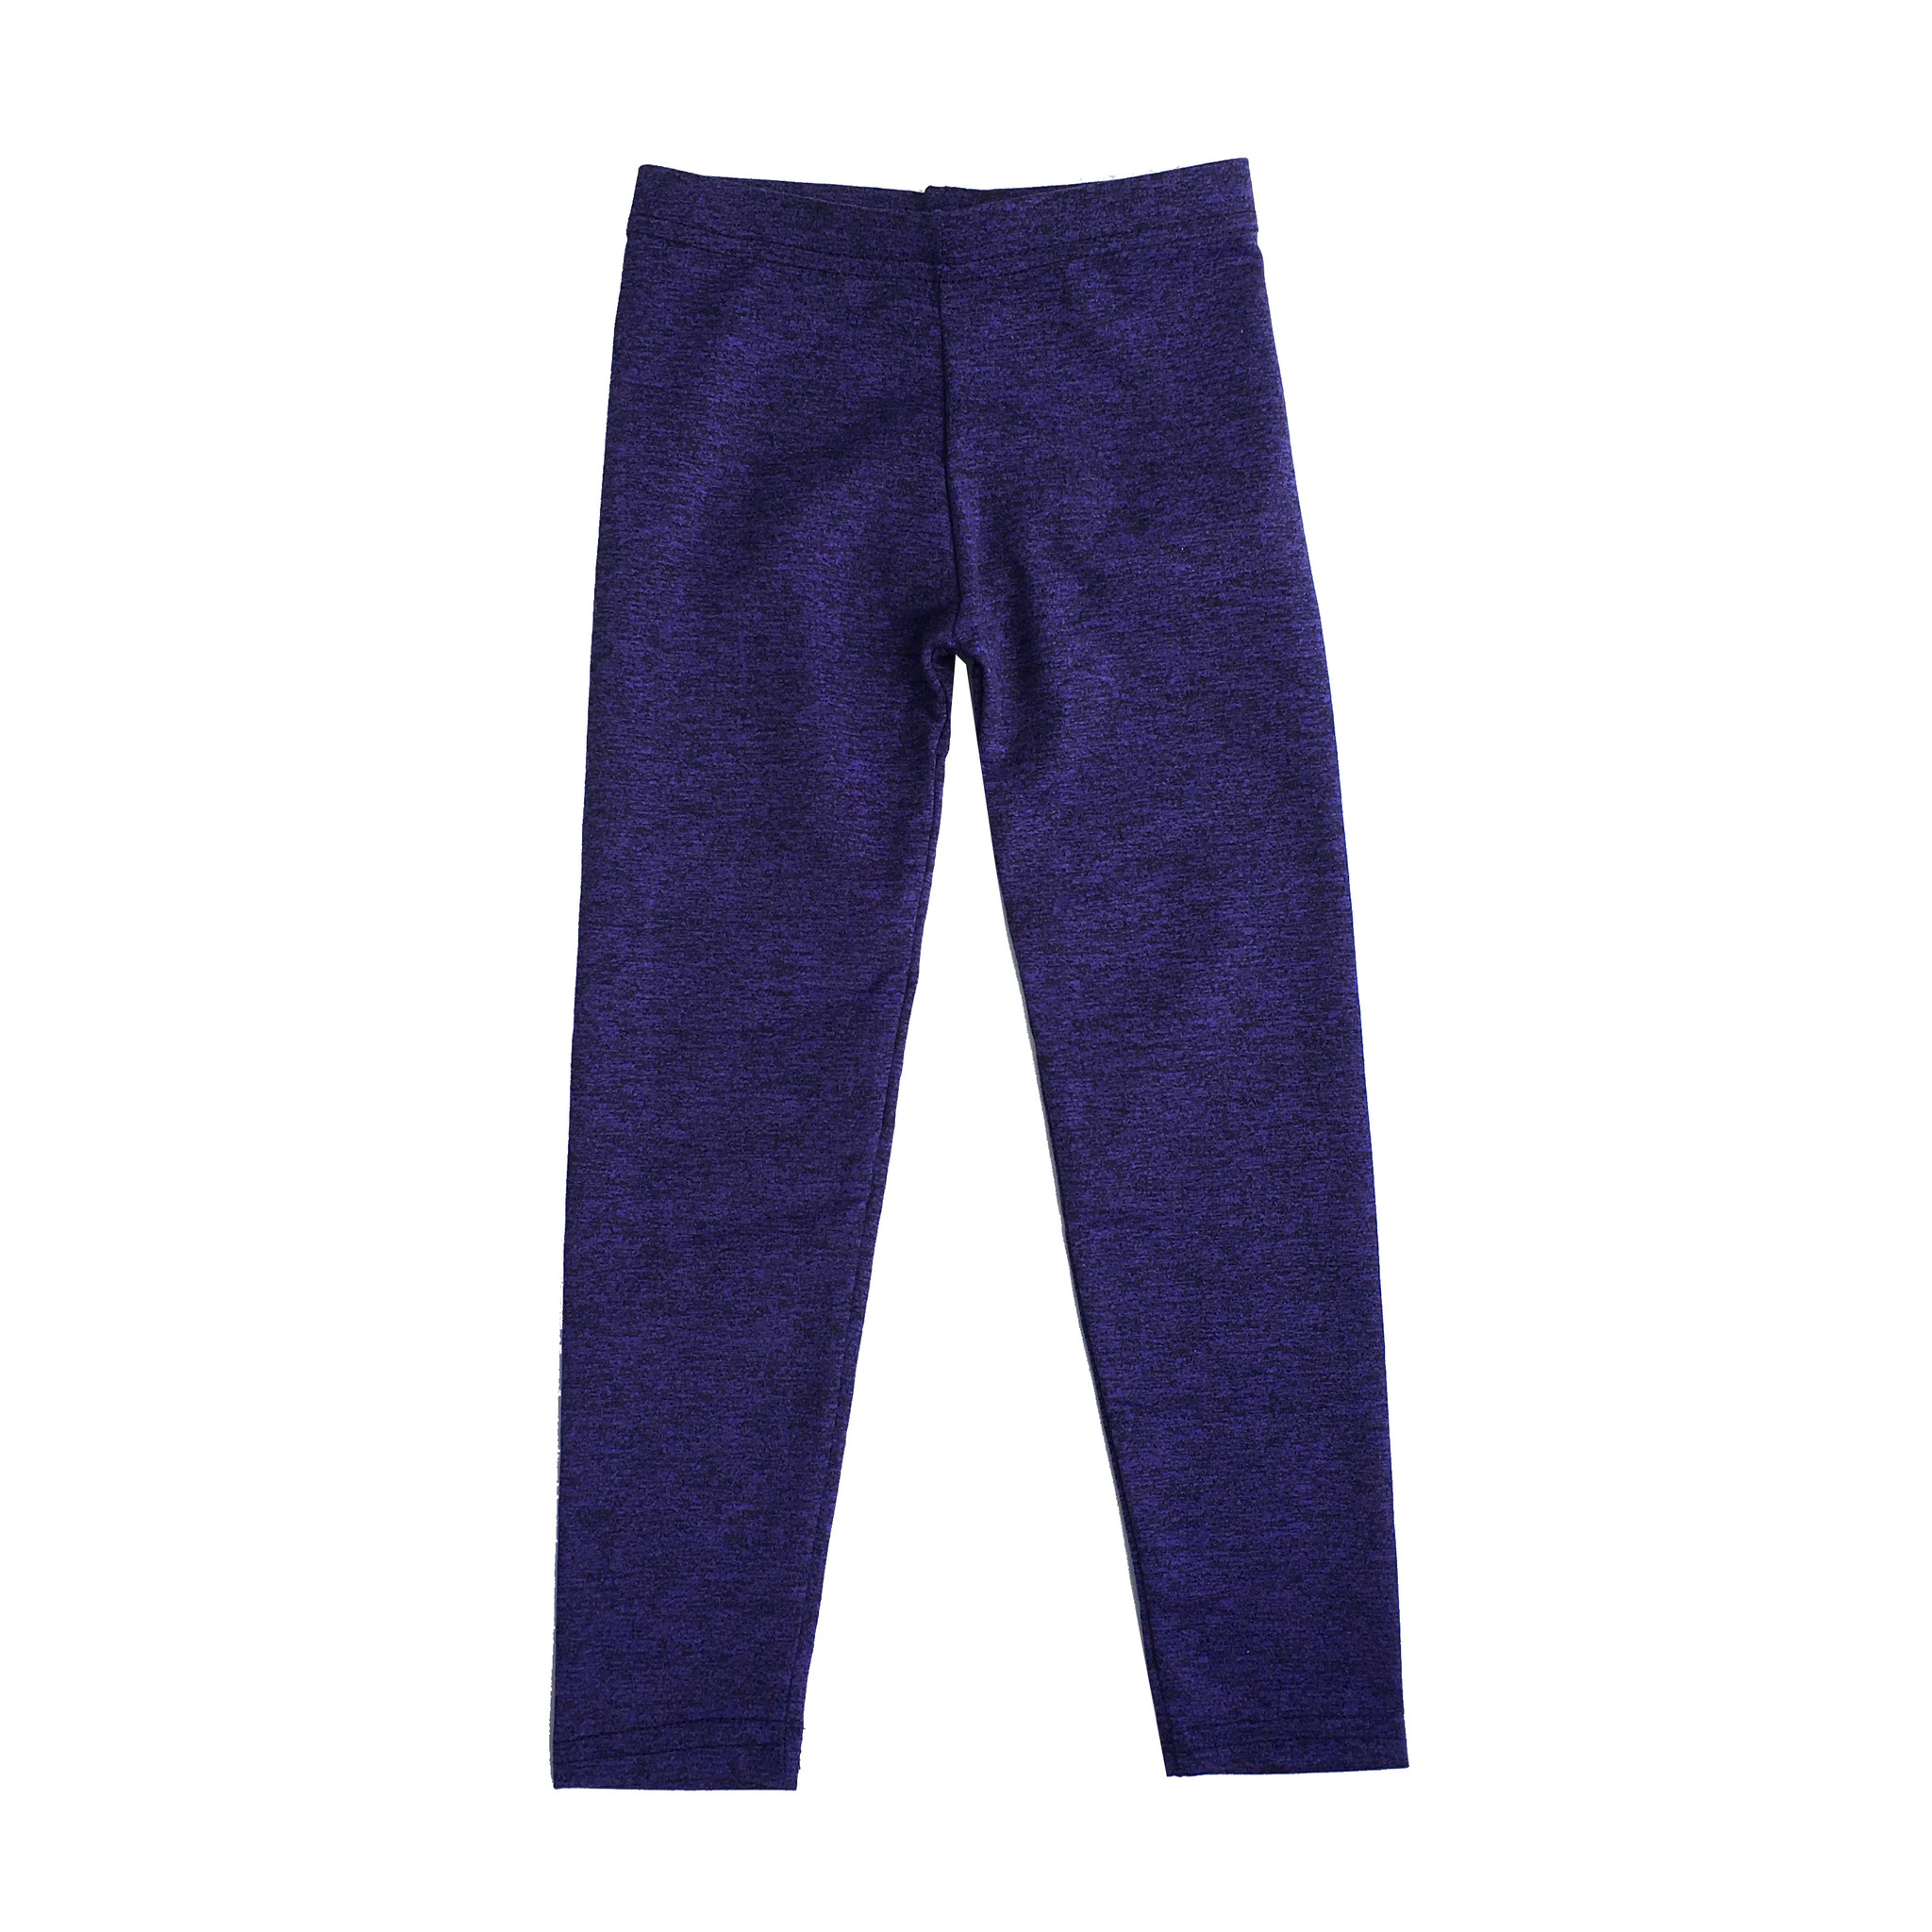 Dori Creations Purple/Black Heathered Legging